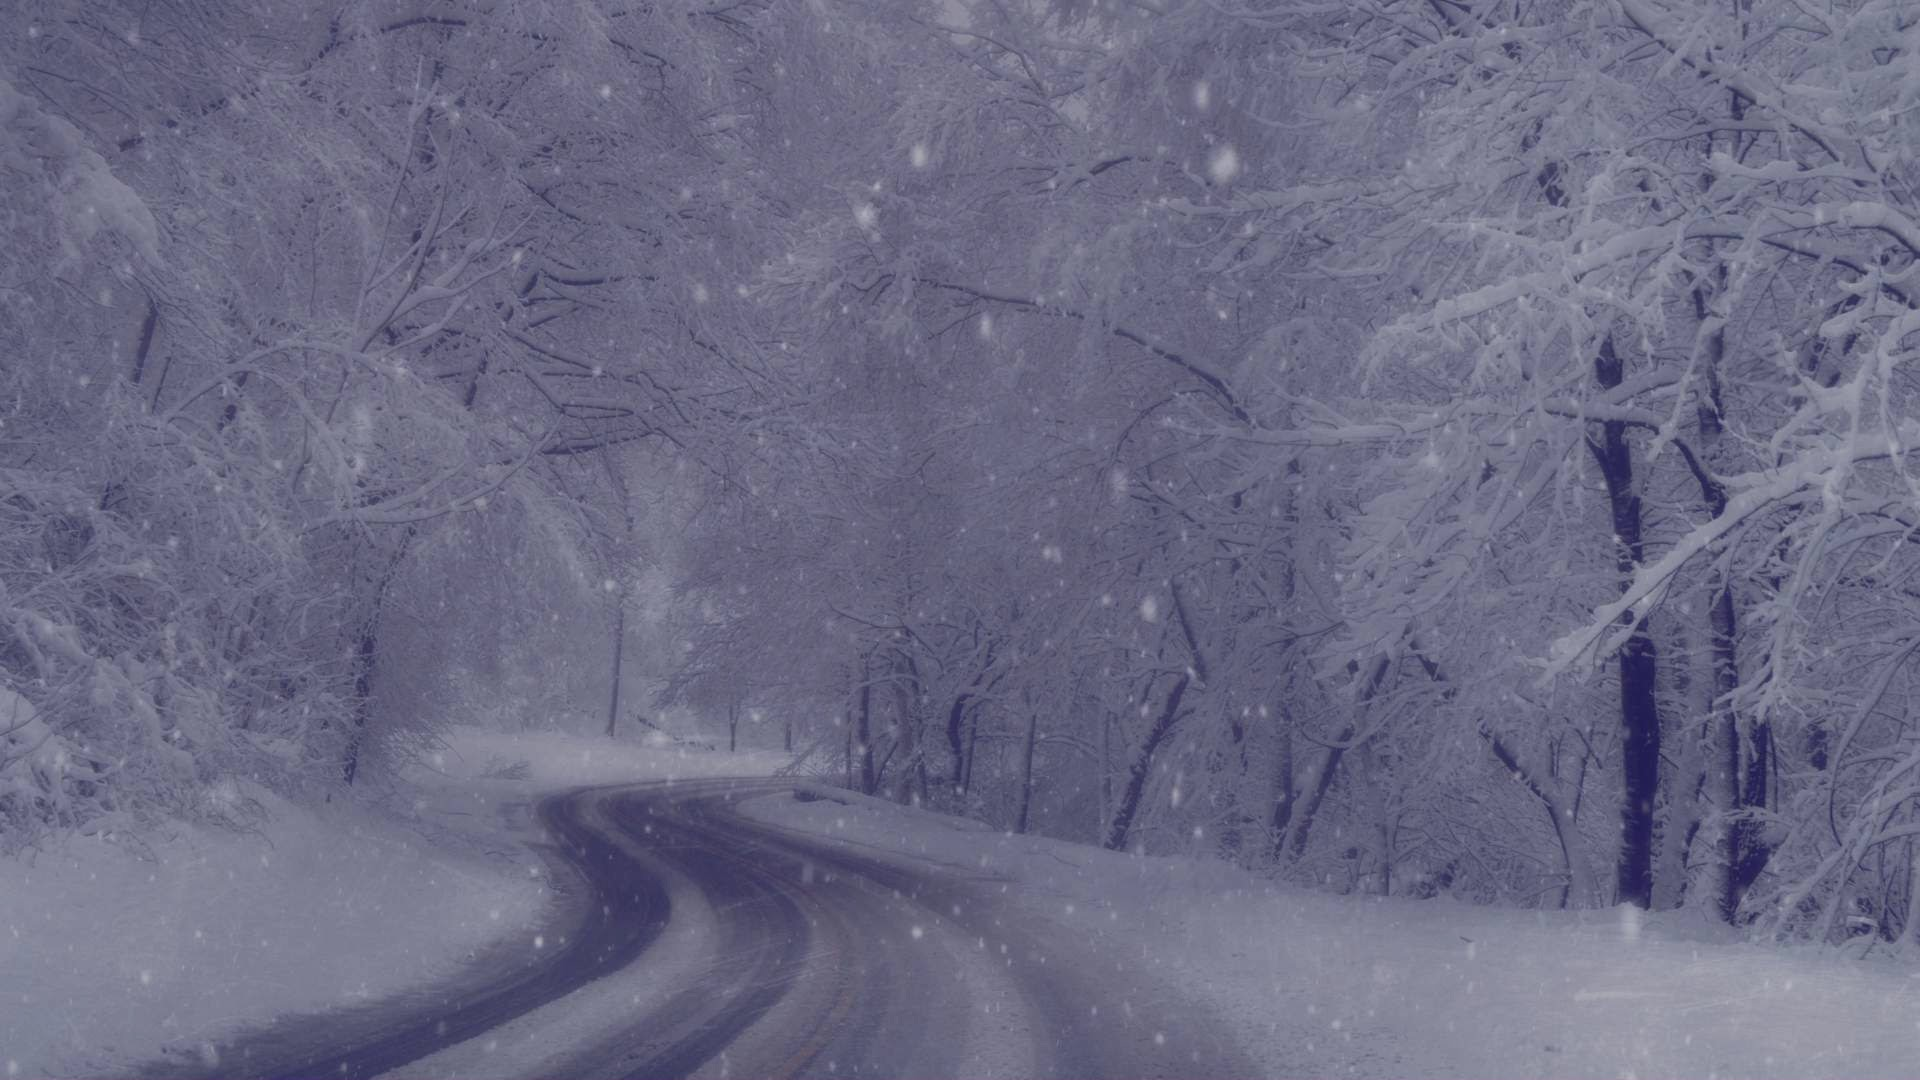 Snow Falling Wallpaper For Ipad Winter Wonderland Background 44 Images